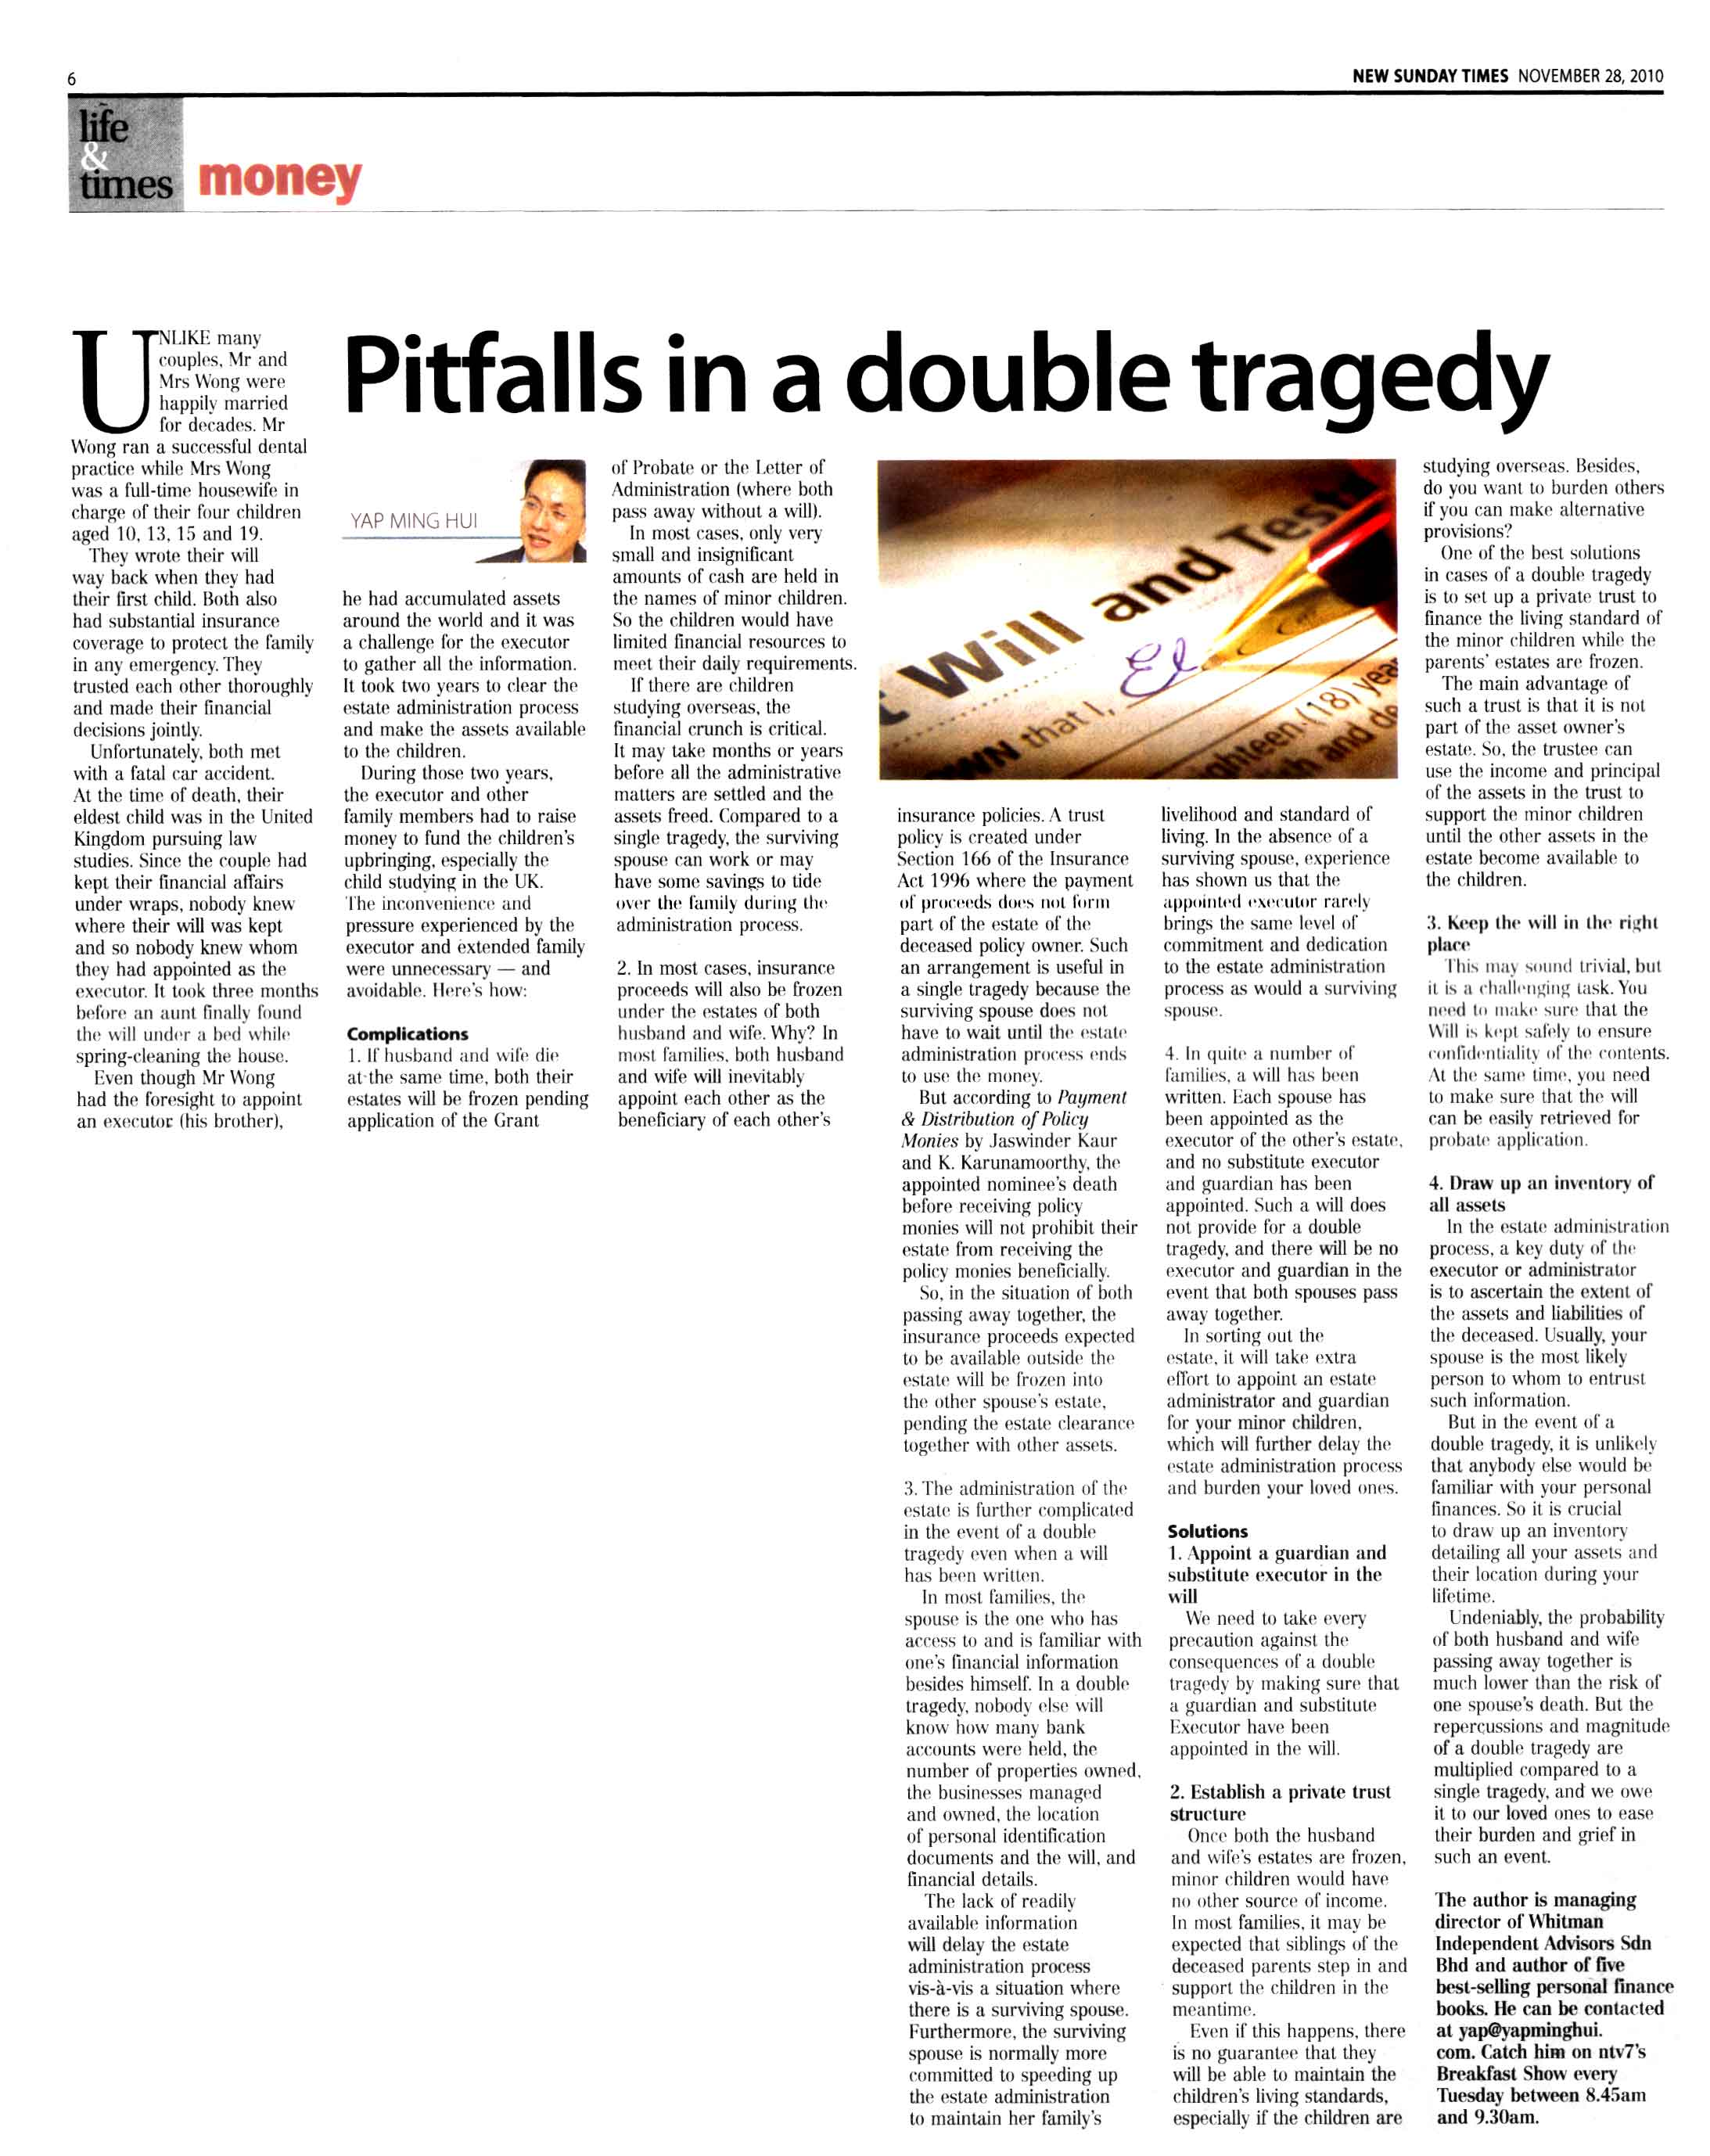 Pitfalls in a double tragedy (New Sunday Times) - 28 Nov 2010